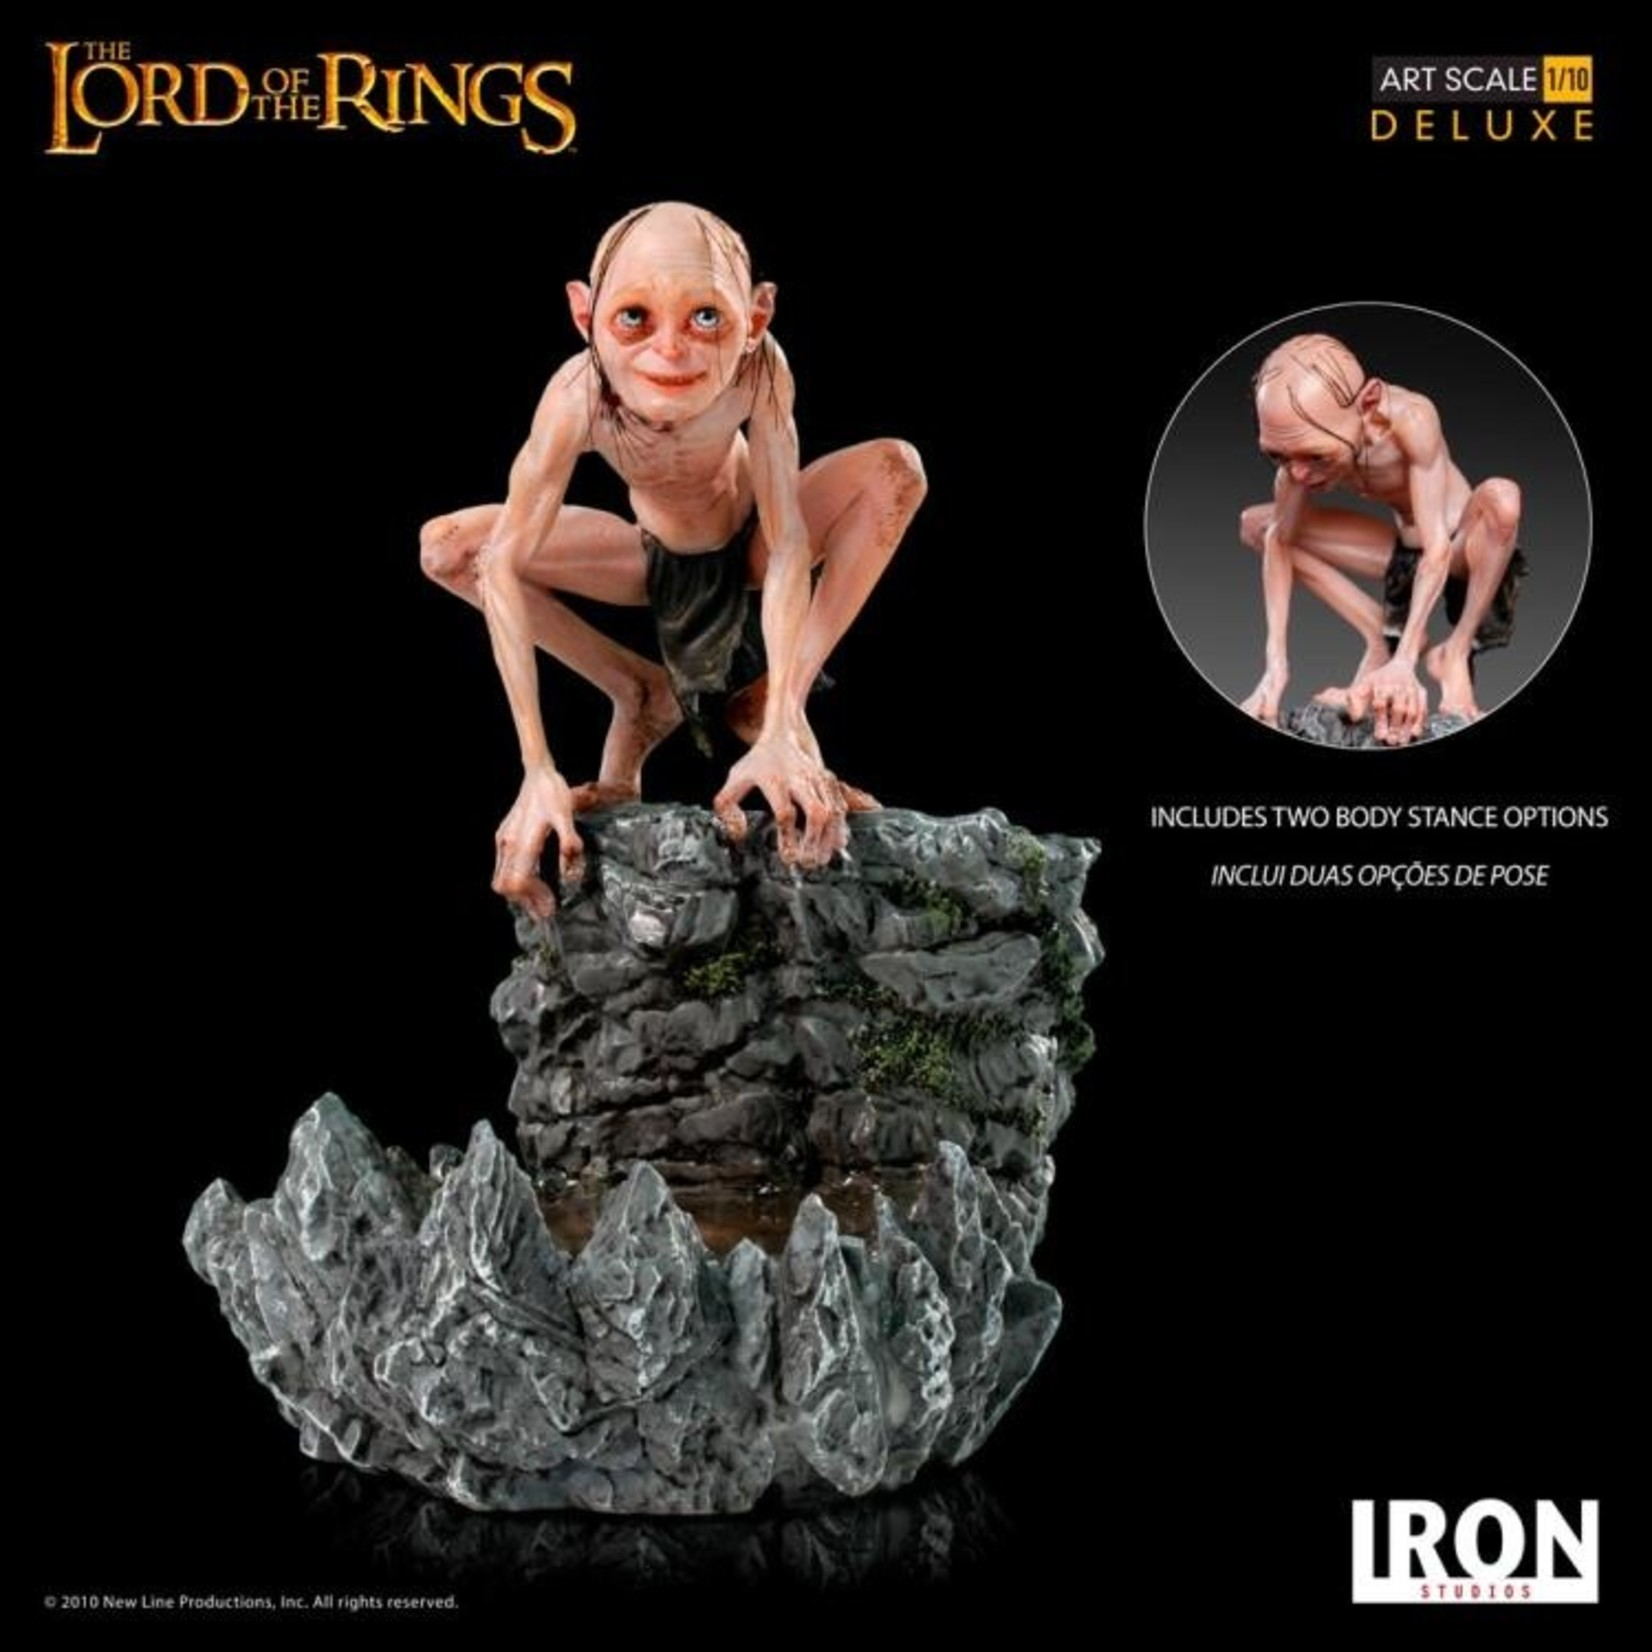 Iron Studios Gollum Deluxe Art Scale 1/10 - Lord of the Rings